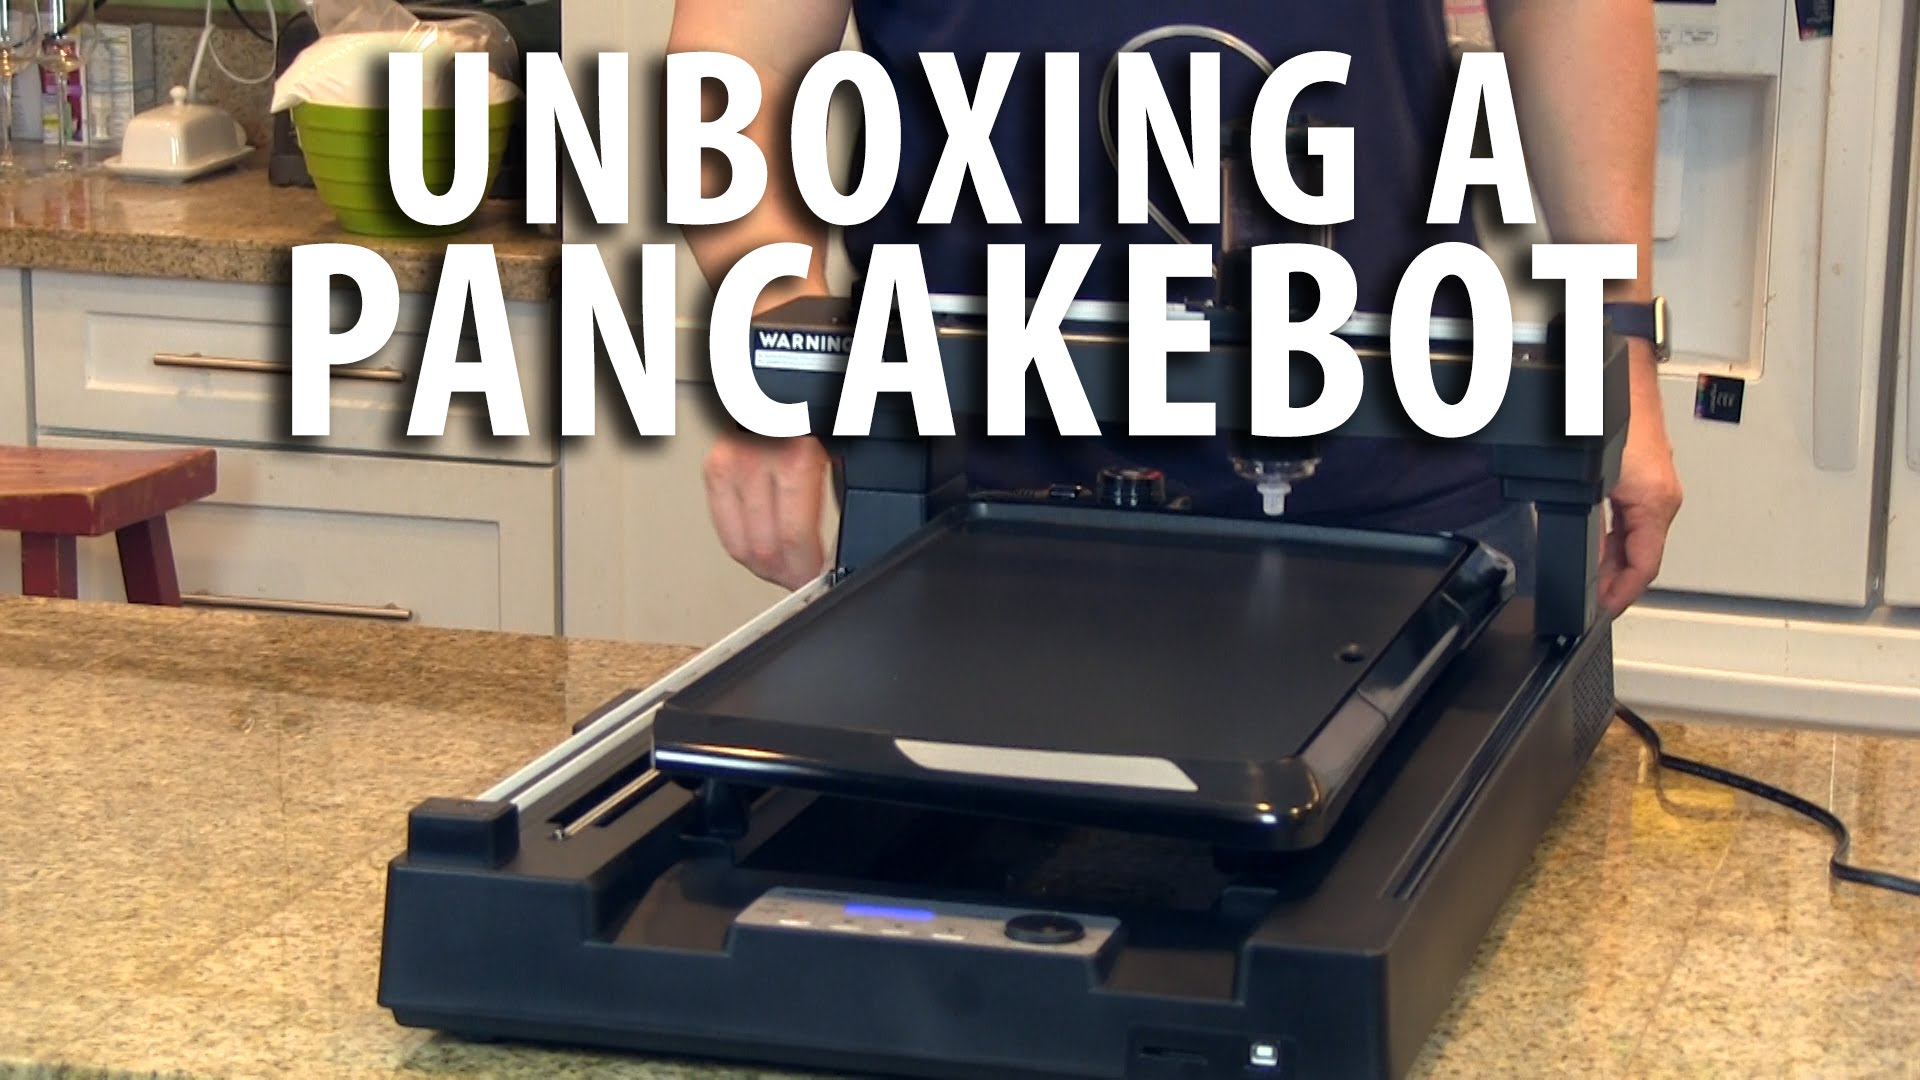 Unboxing the Pancakebot